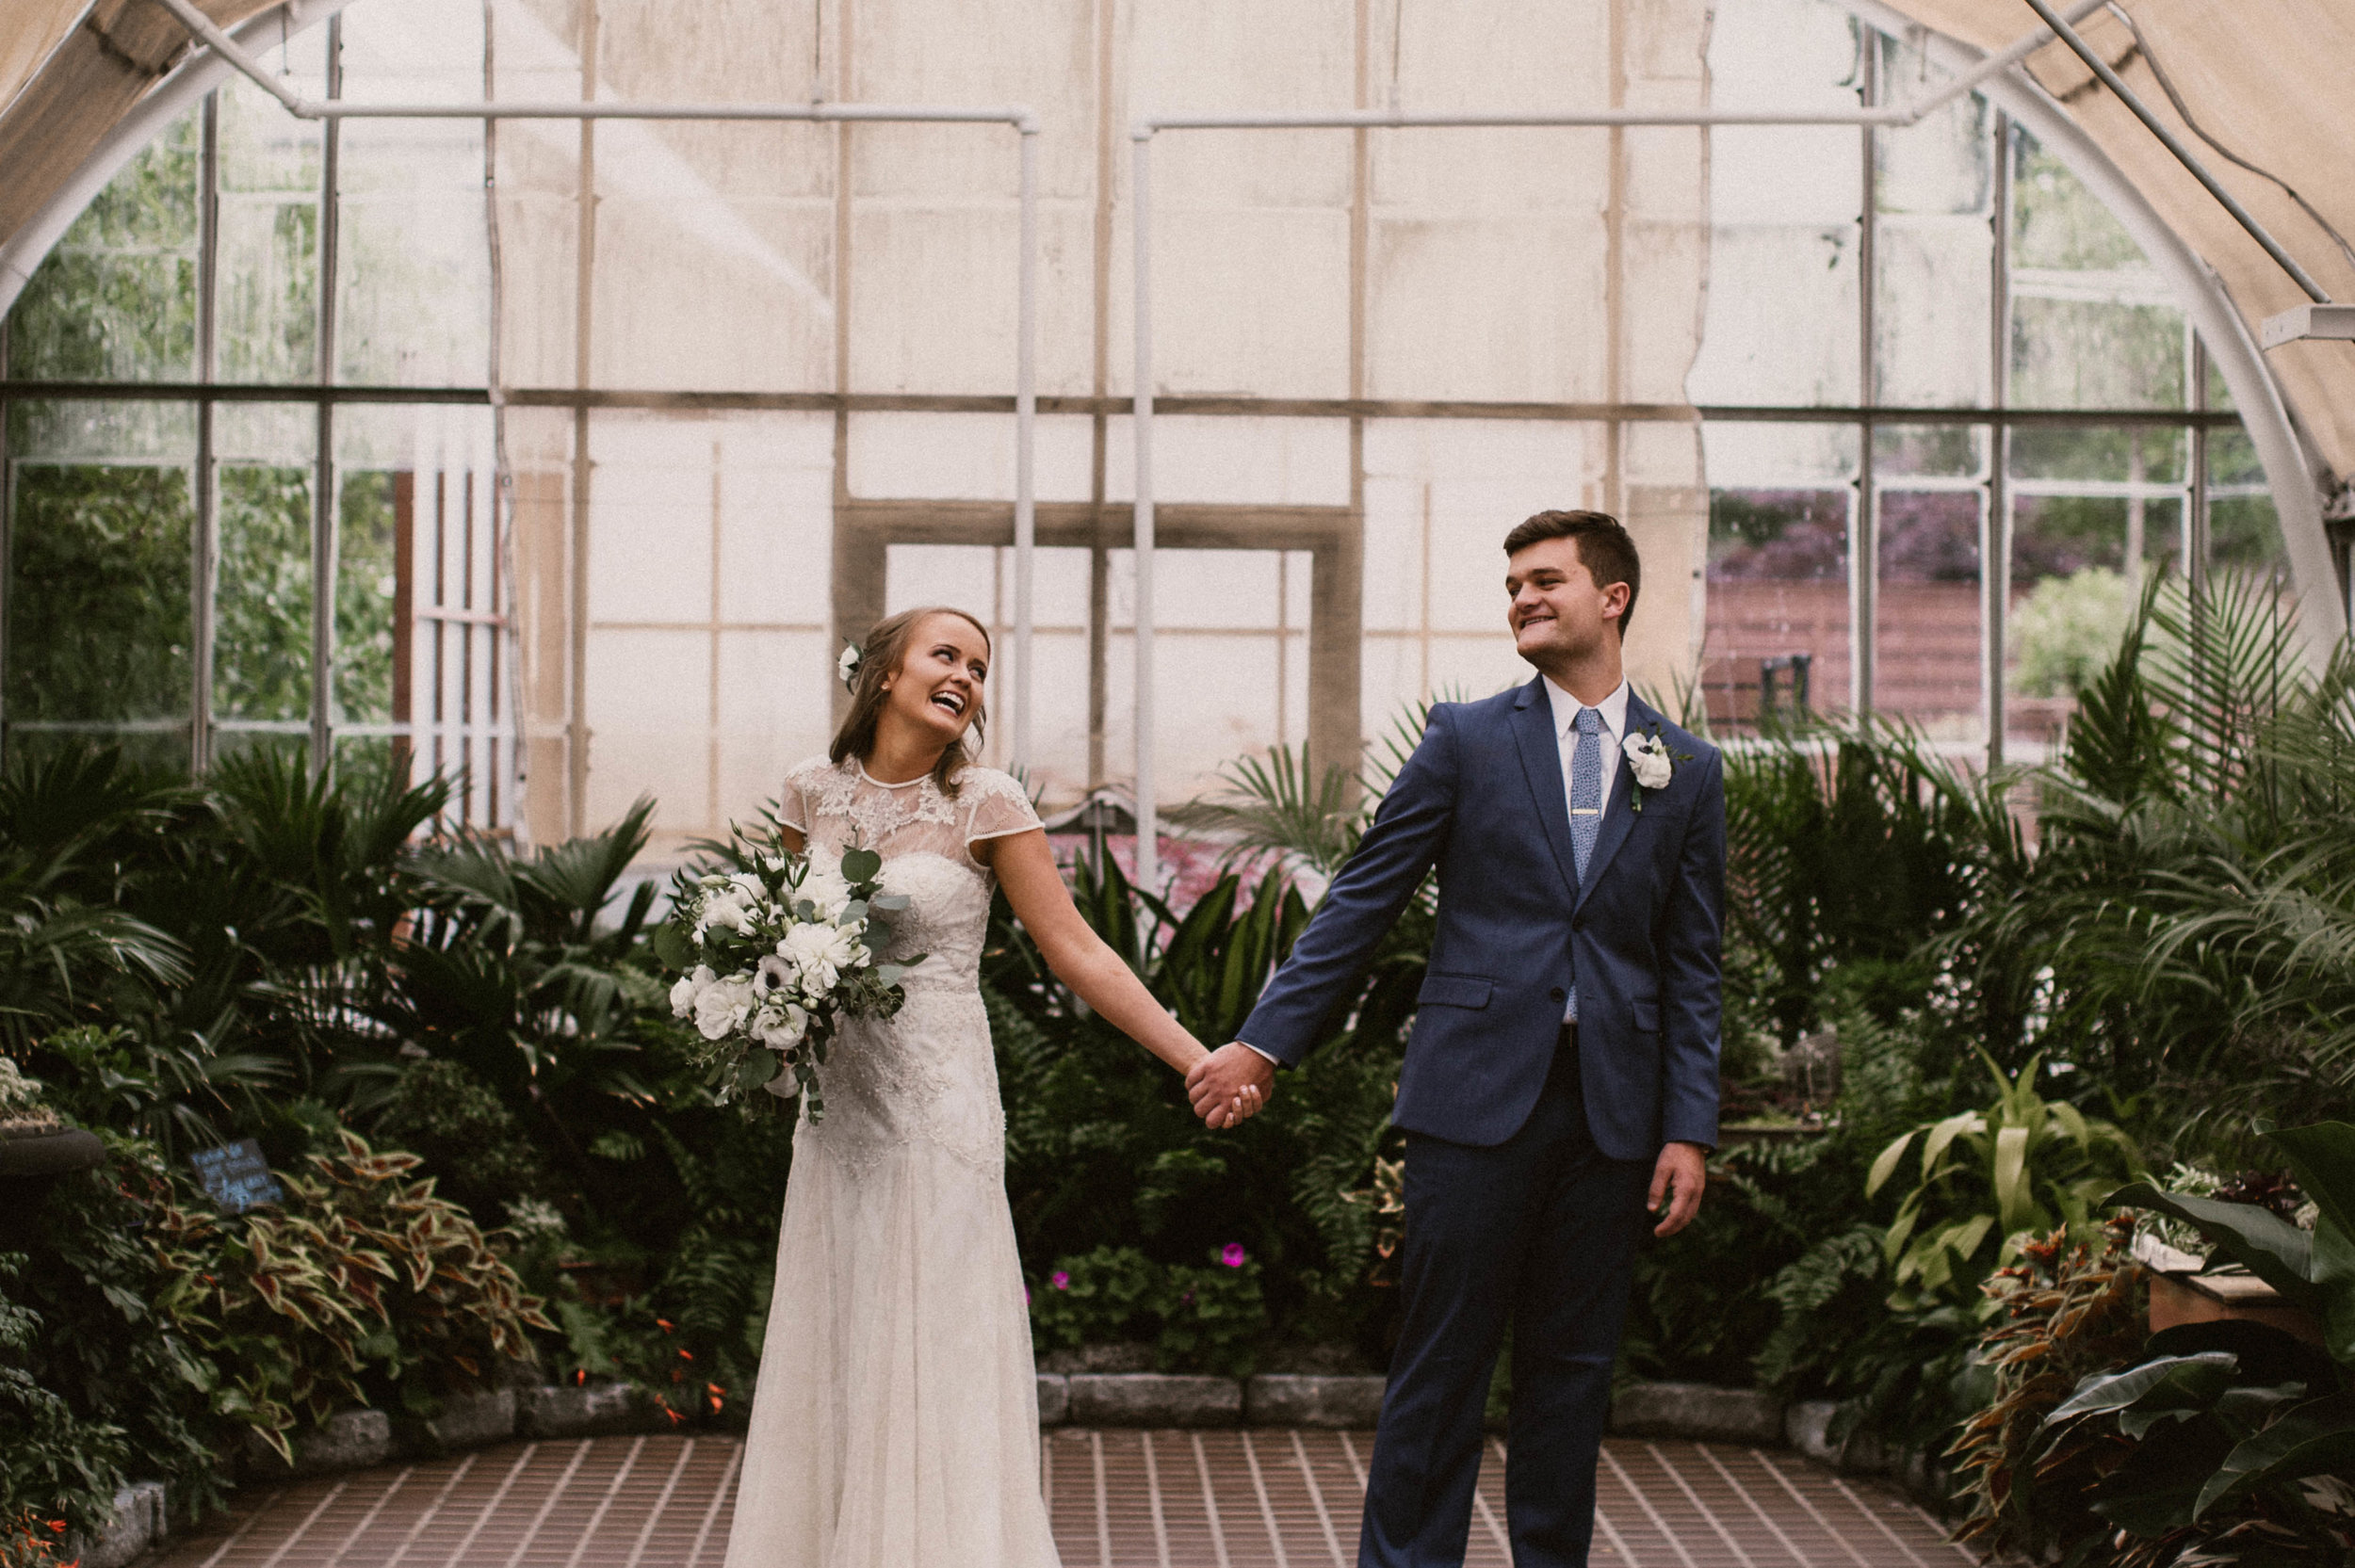 LINDSAY & CHRISTIAN - STYLED FRANKLIN PARK CONSERVATORY WEDDING